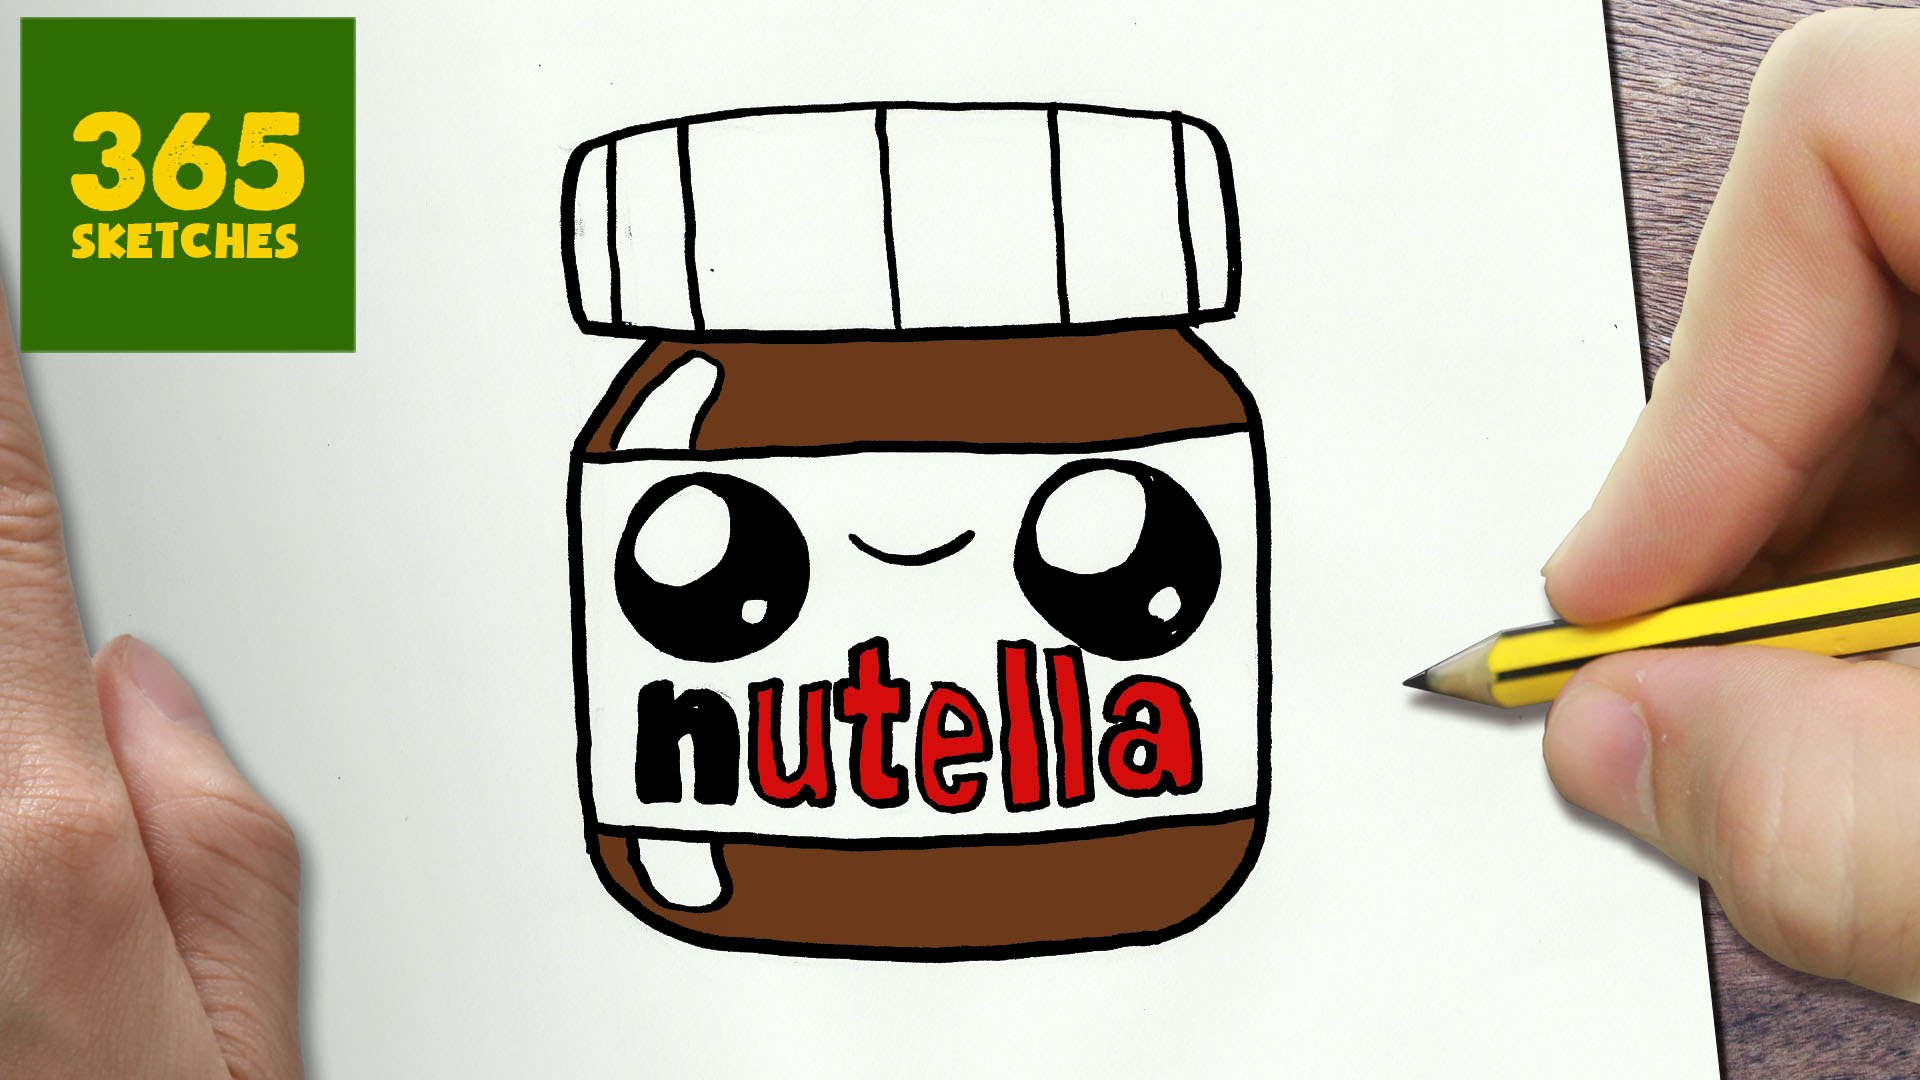 Drawn nutella #11